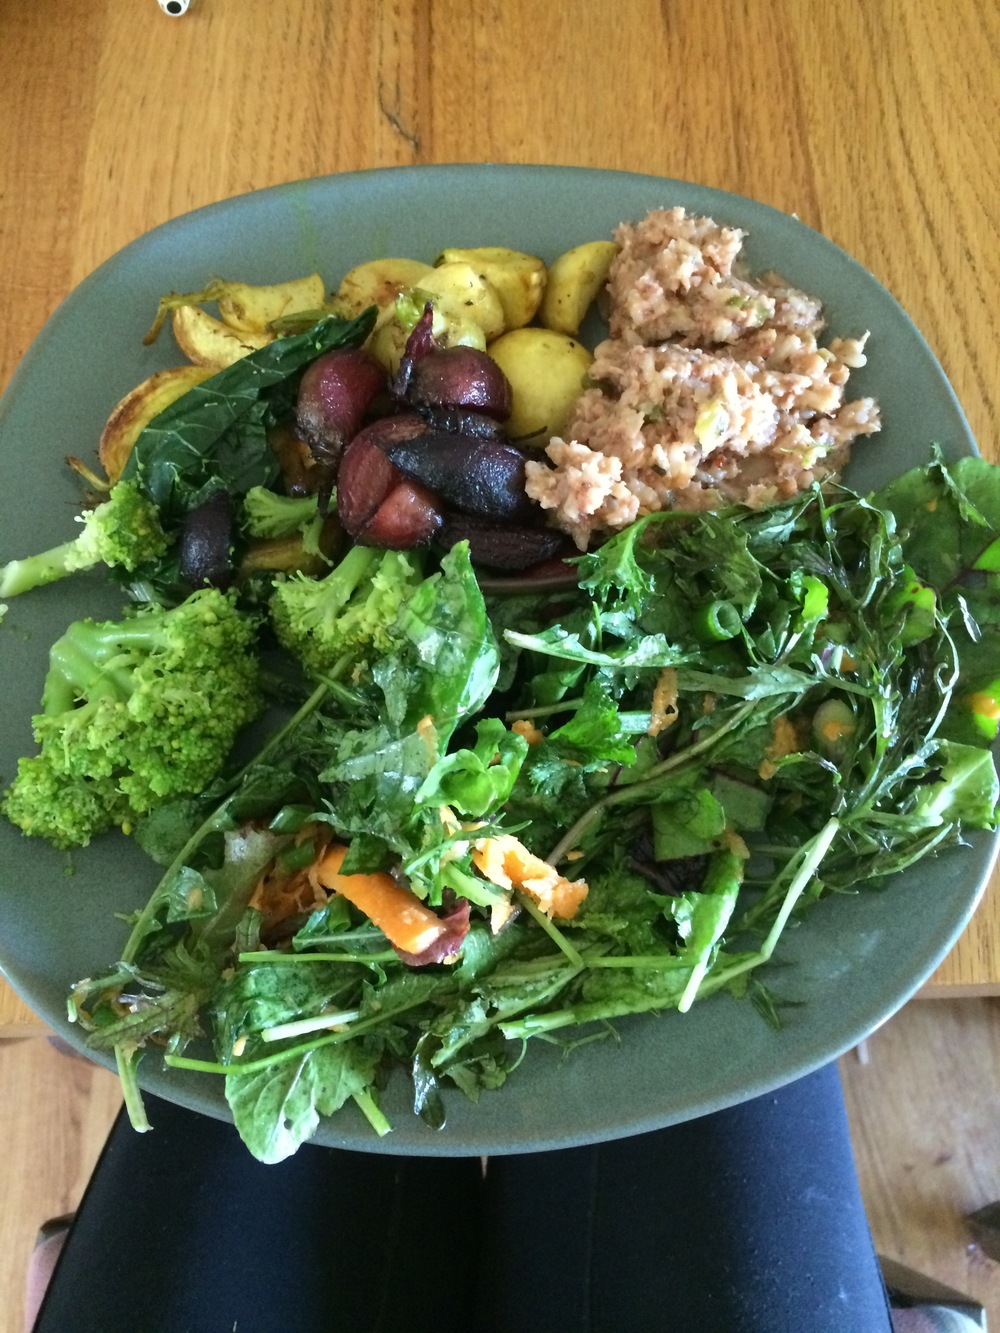 Devan always makes great lunches and there are like 5 different things on the plate! Today it was mixed greens salad with kale, arugula, mustards, carrots, green onions, purslane, and a lemon vinaigrette, steamed broccoli, turmeric and orange zest roasted turnips, cinnamon roasted beets, a smoked sausage dish from Husk, millet, and lentils!